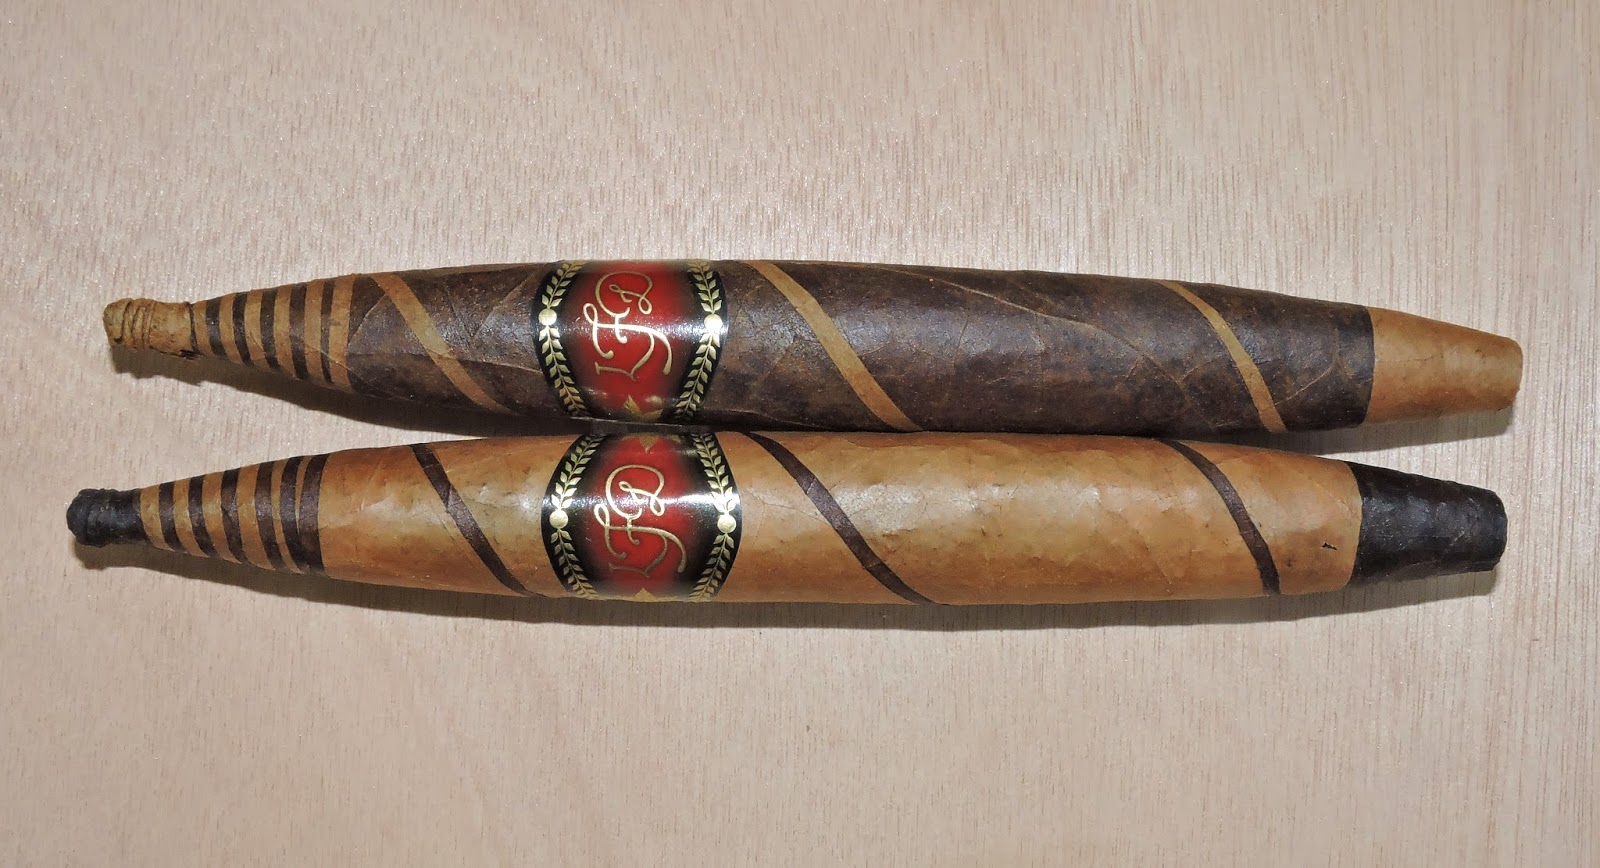 La_Flor_Dominicana_Mysterioso_Collectors_Edition_2013_TCKFA_M_Collectors_Edition_2014